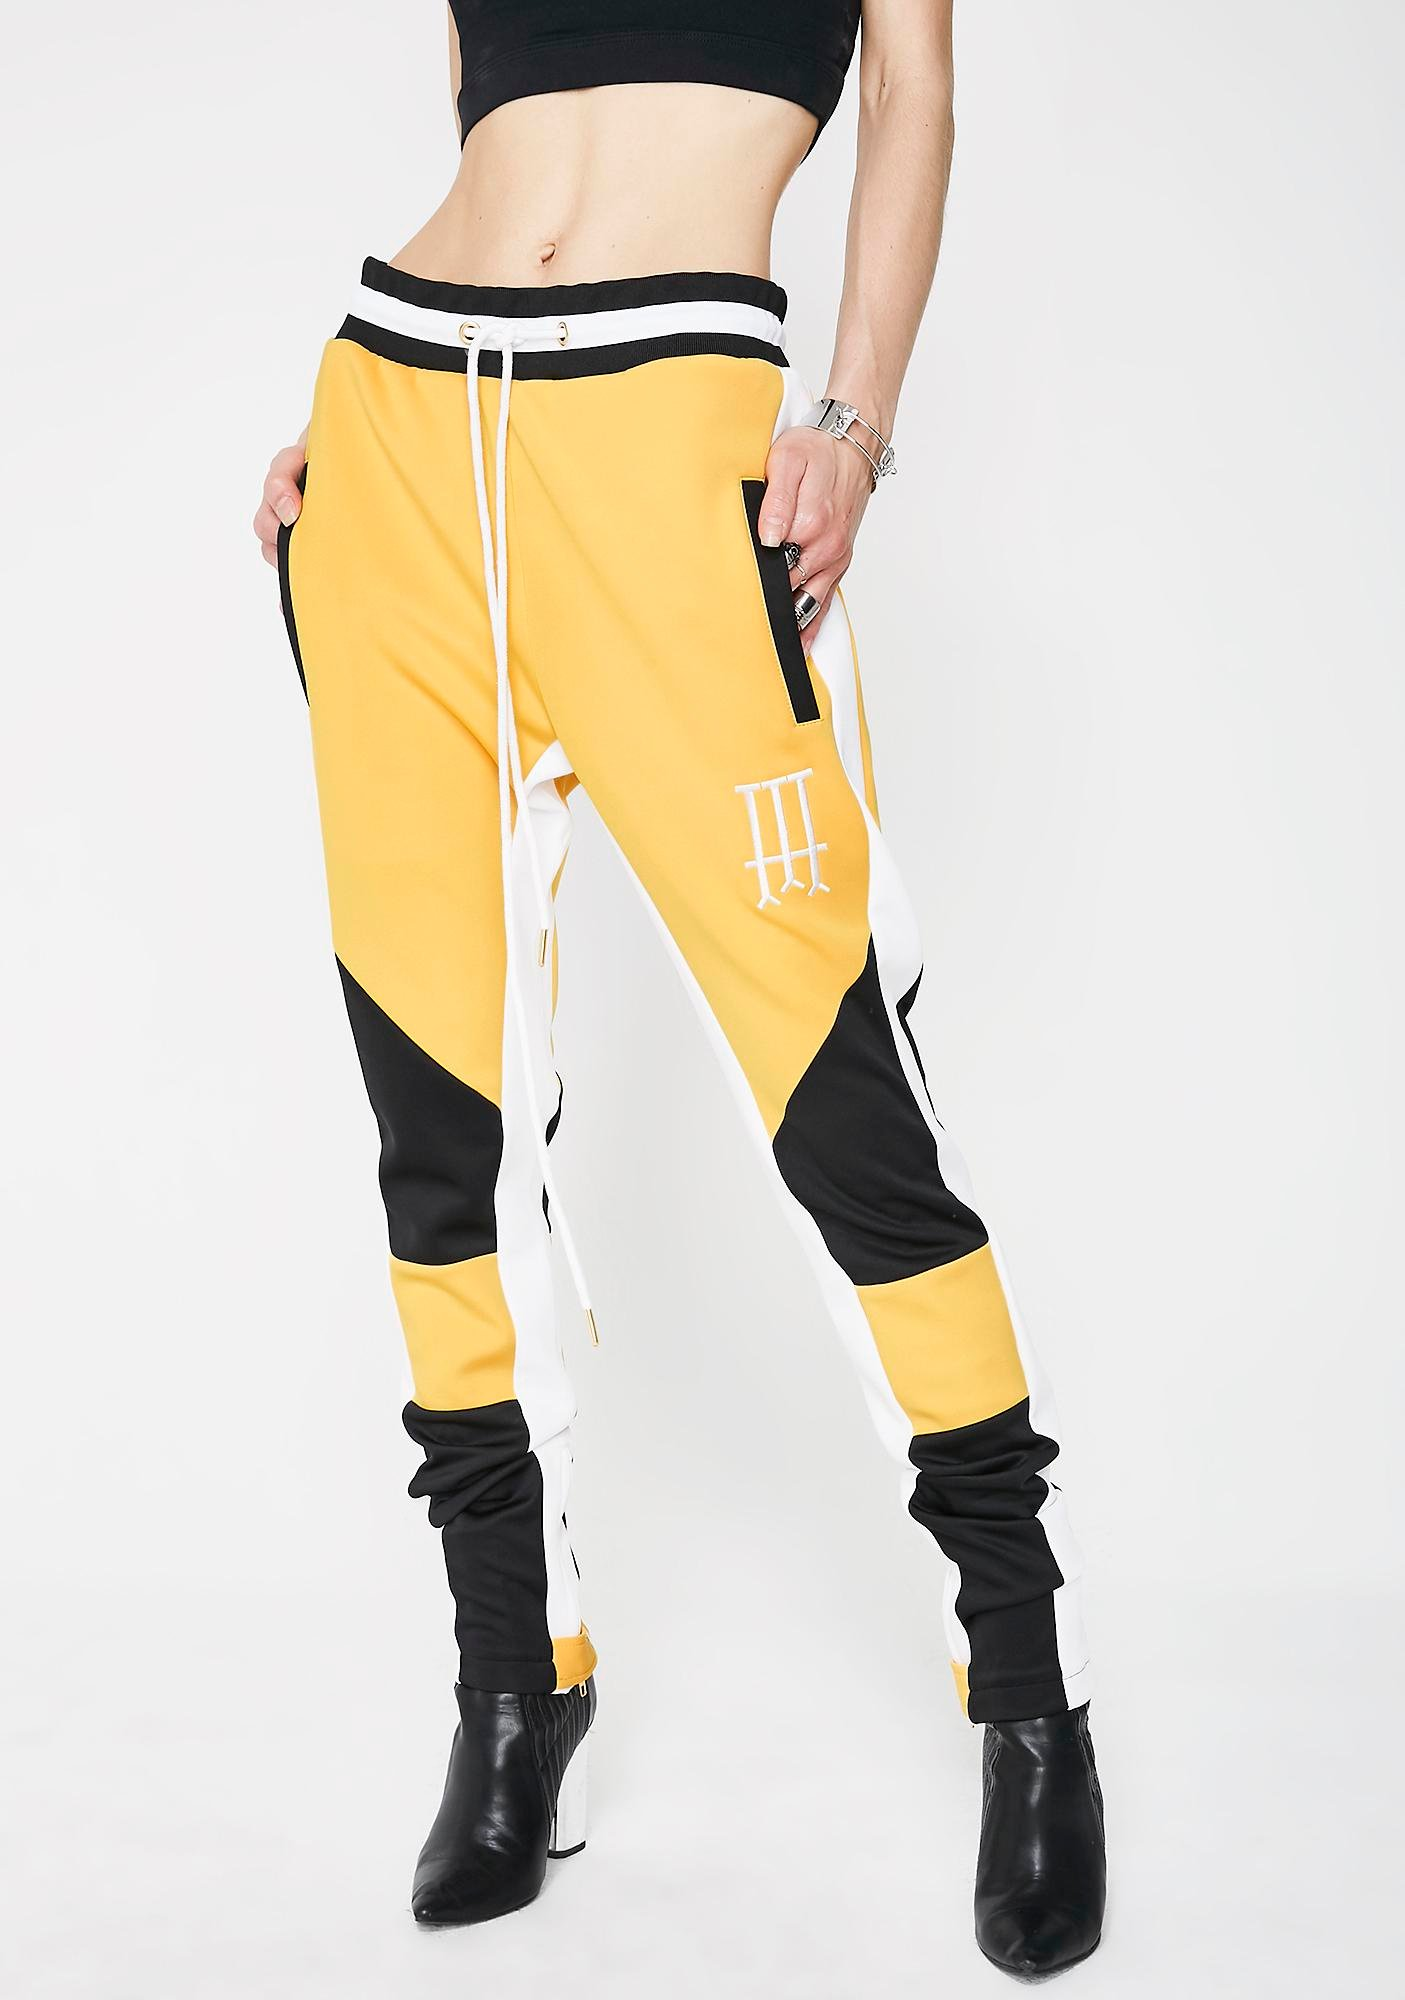 Beast Mode Moto Pants